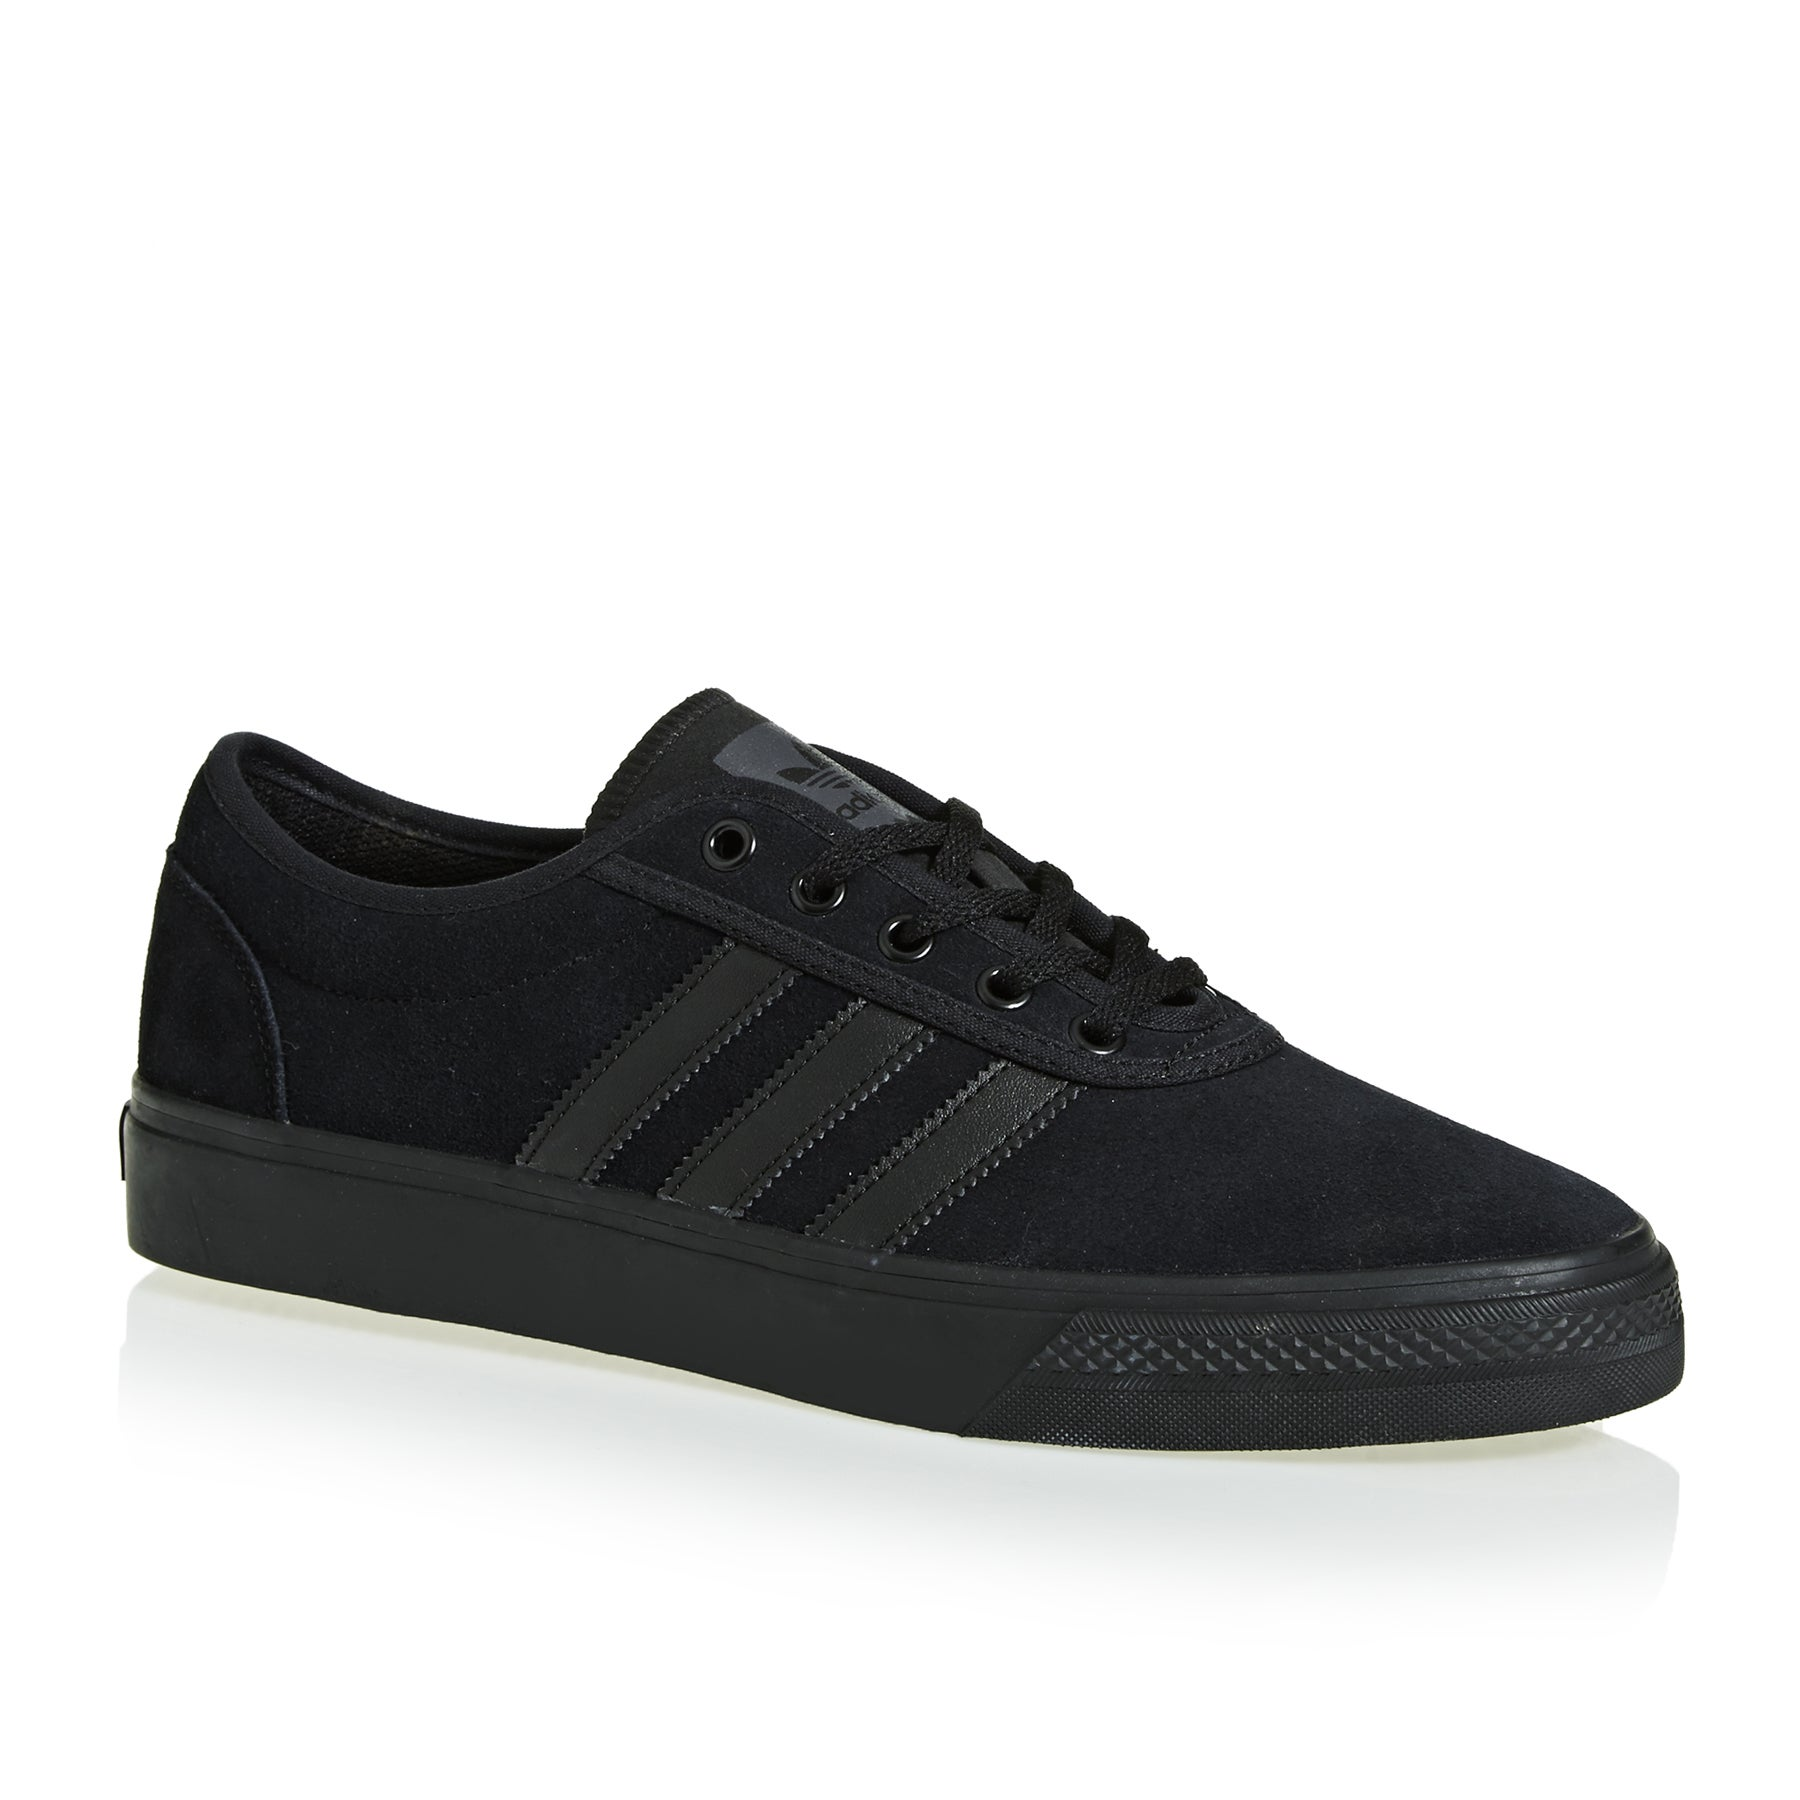 Adidas Adi Ease Shoes - Black